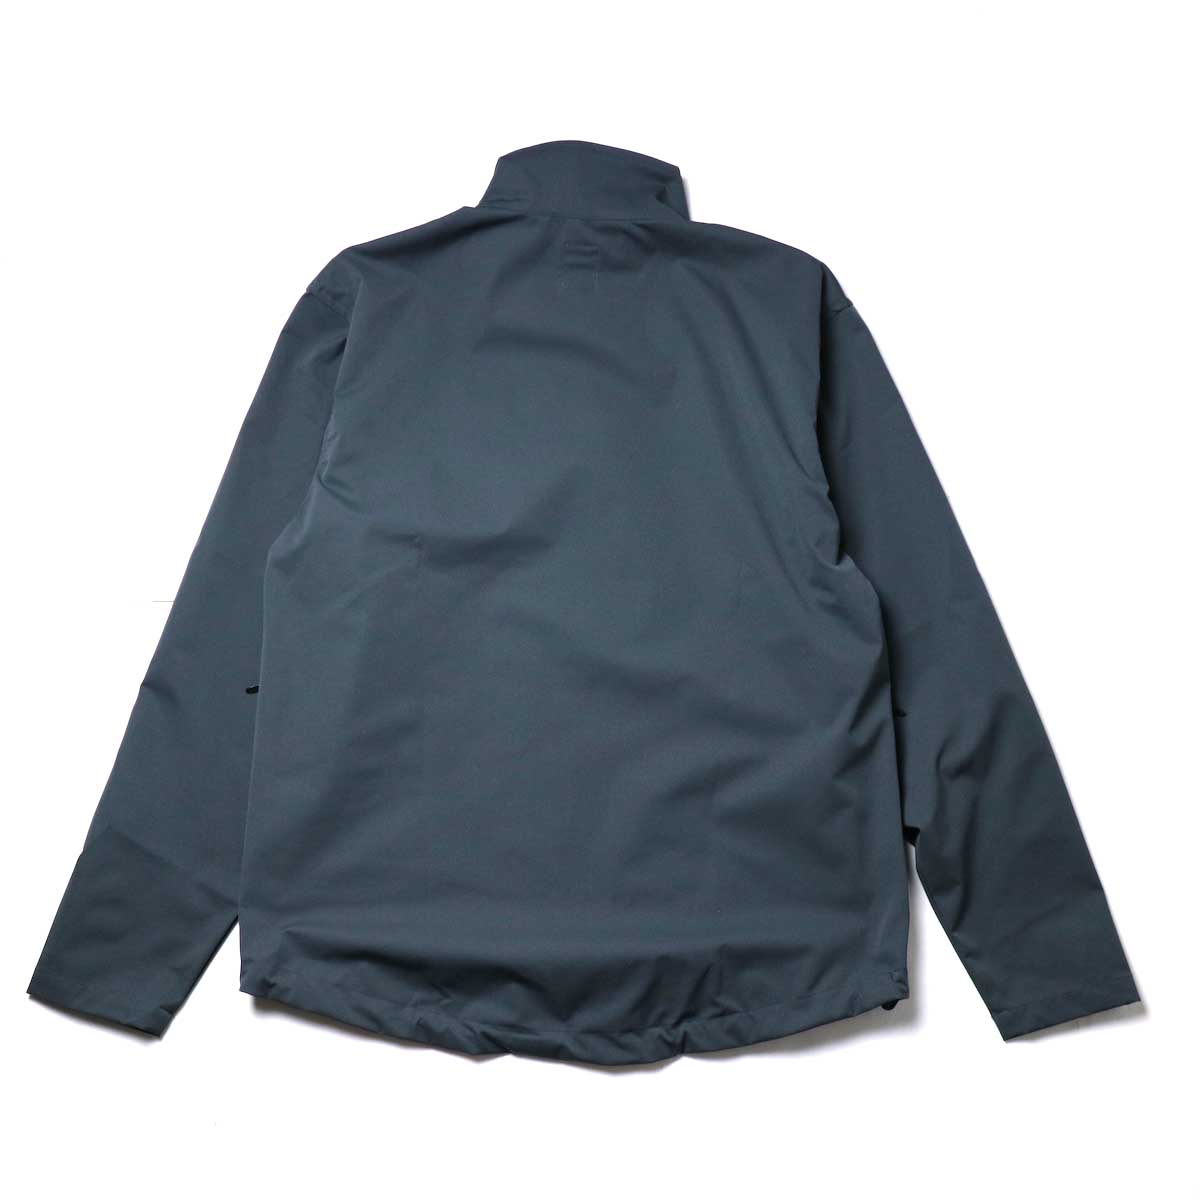 South2 West8 / Boulder Shirt -Poly Stretch Twill (Charcoal)背面